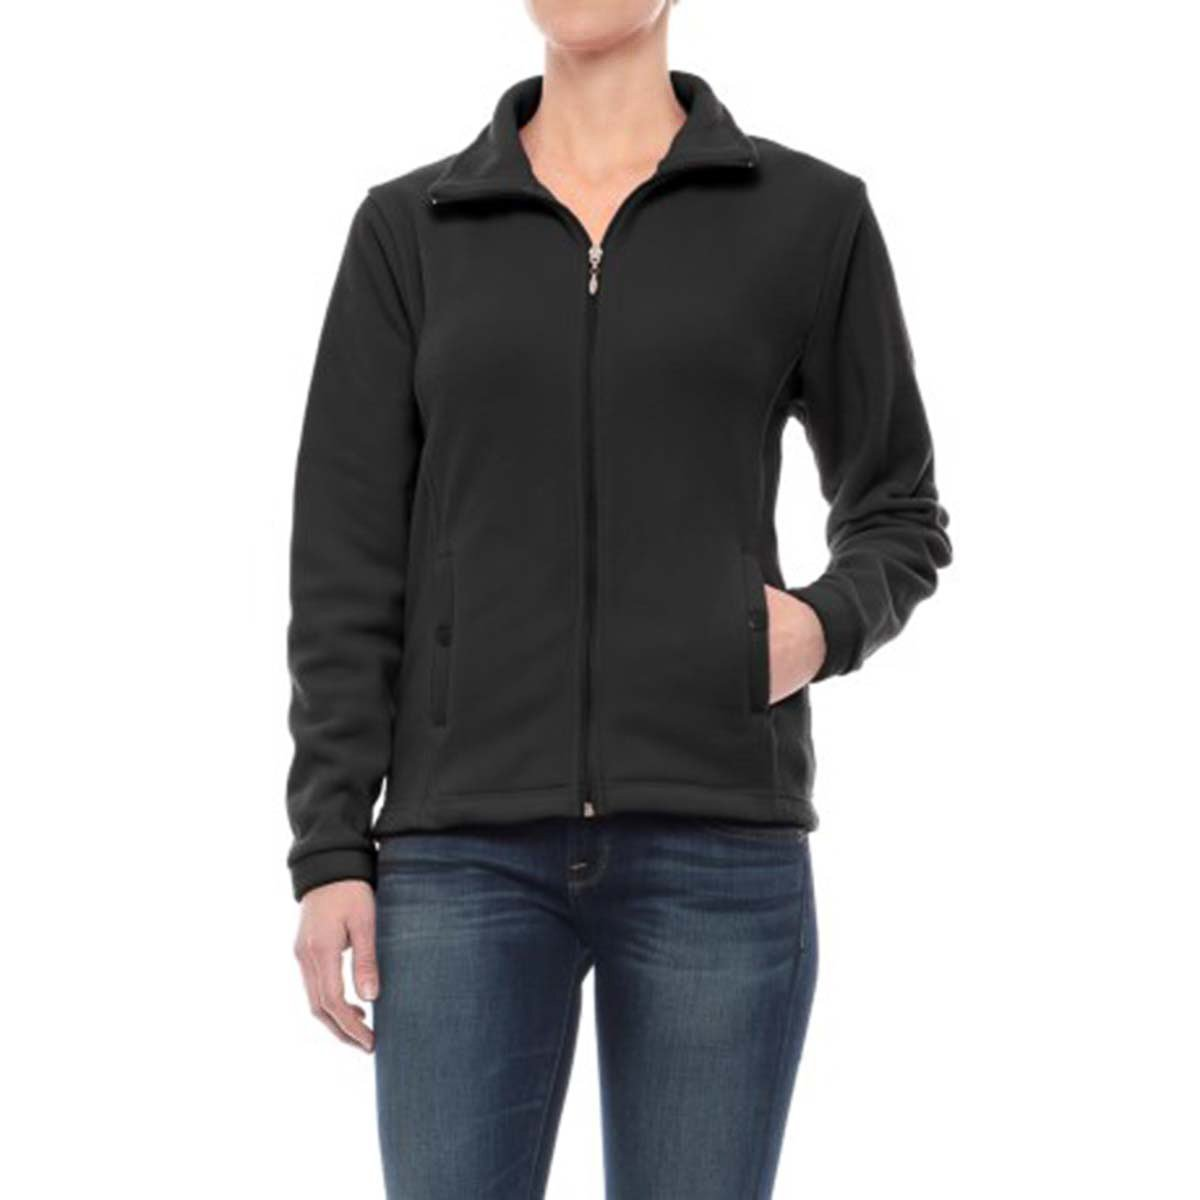 Excelled Leather Stanley Women's Fleece Jacket Full Zip Collar Lightweight Soft Warm Thermal Ladies Winter Coat, Black, Medium